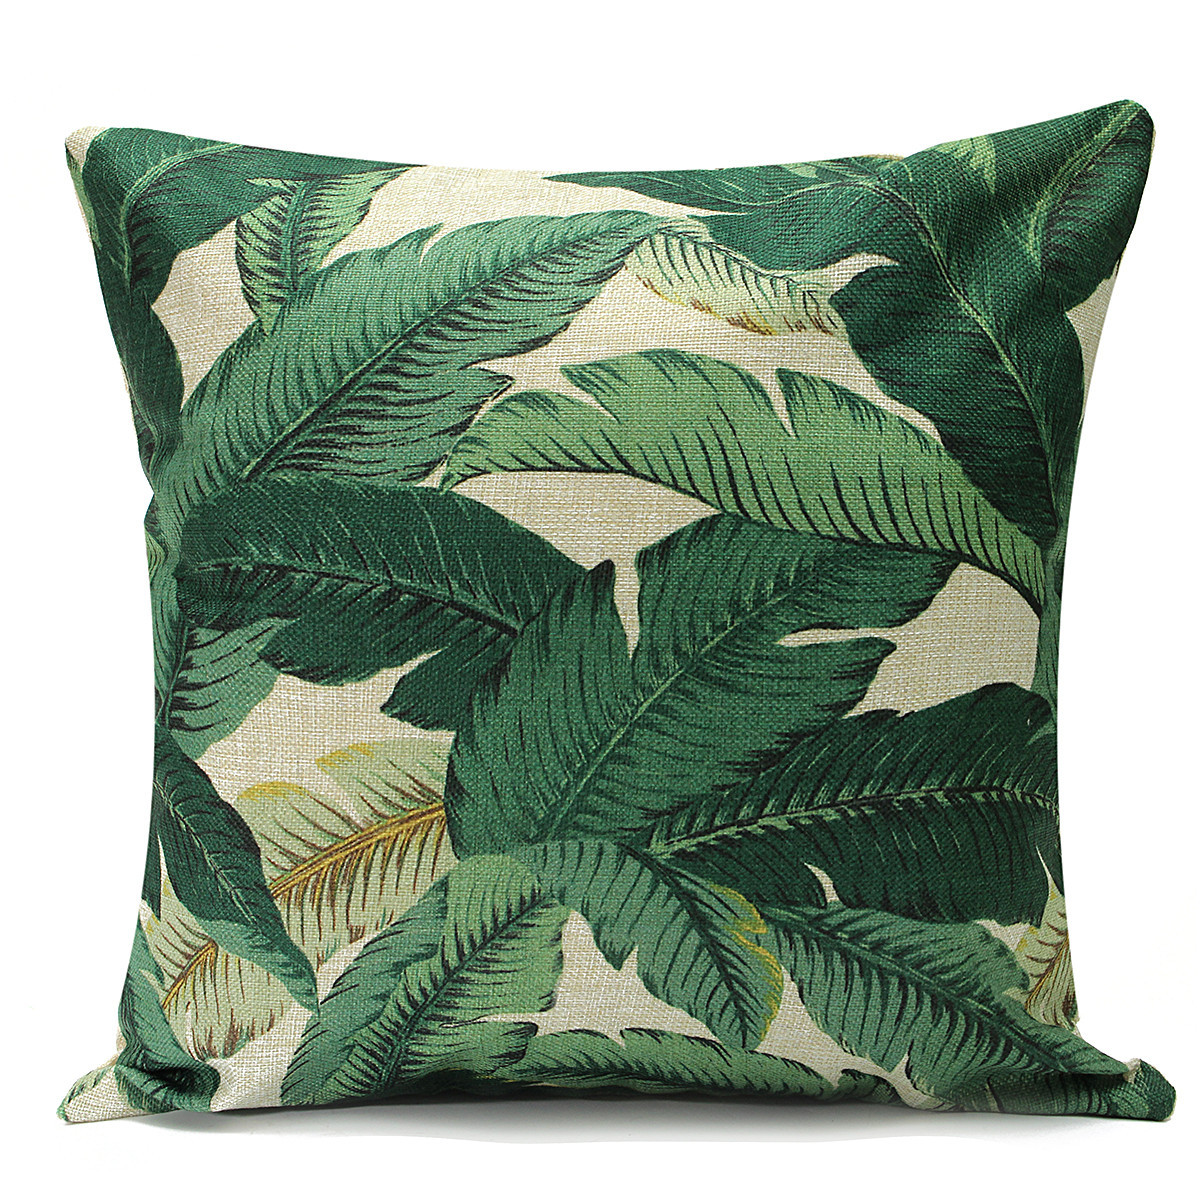 Tropical Banana Leaves Cushion Cover Cotton Linen Throw Pillow Case Home Decor eBay